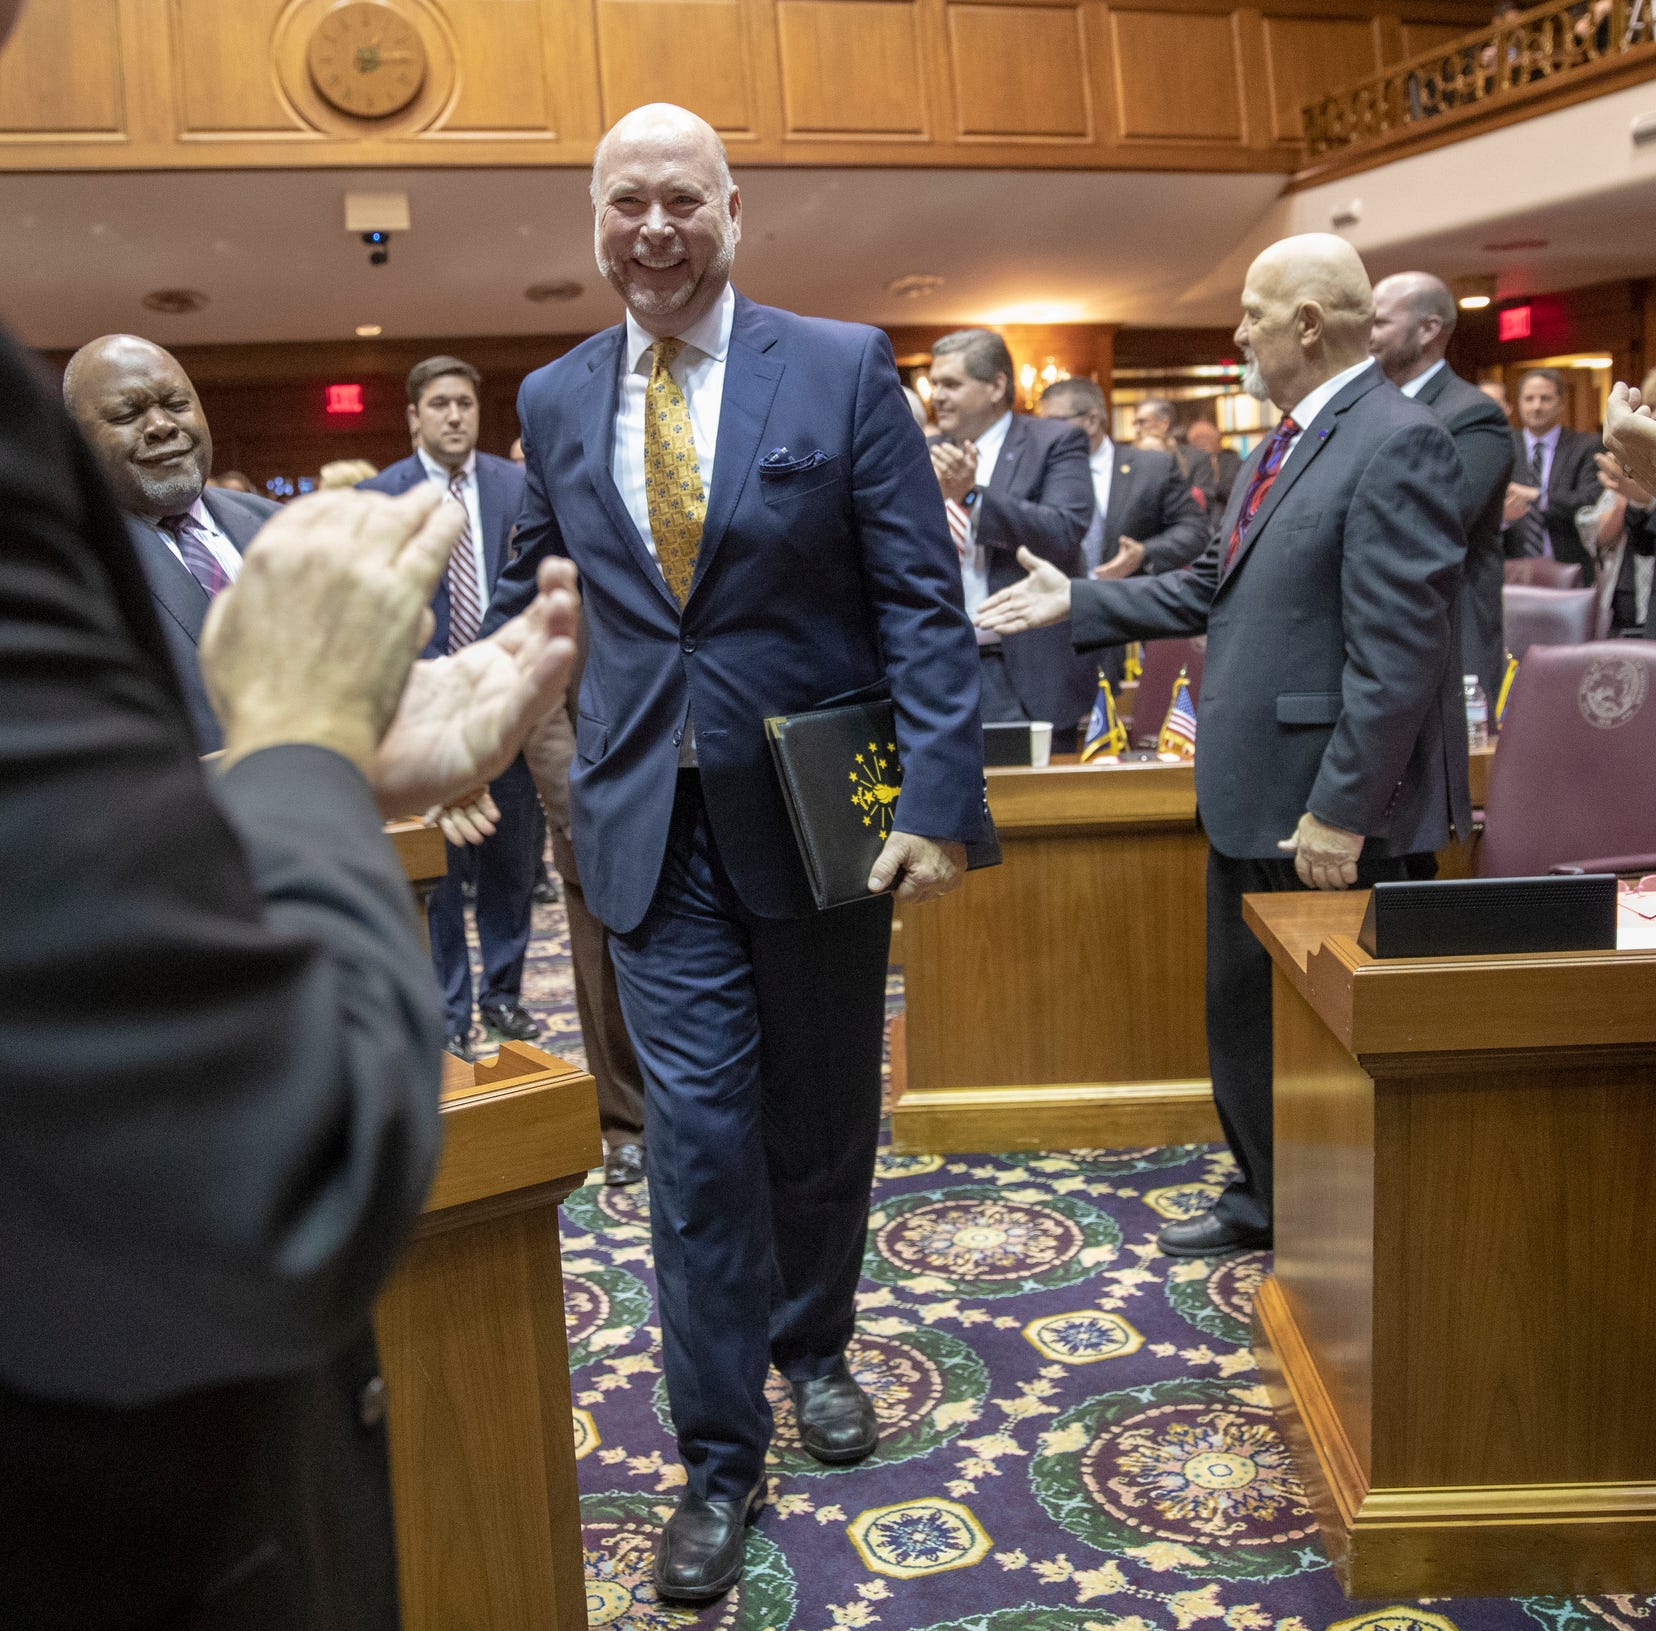 Brian Bosma, walks the aisle after being introduced as Speaker of the House on the day of the start to the legislative session, Indiana Statehouse, Indianapolis, Tuesday, Nov. 20, 2018.